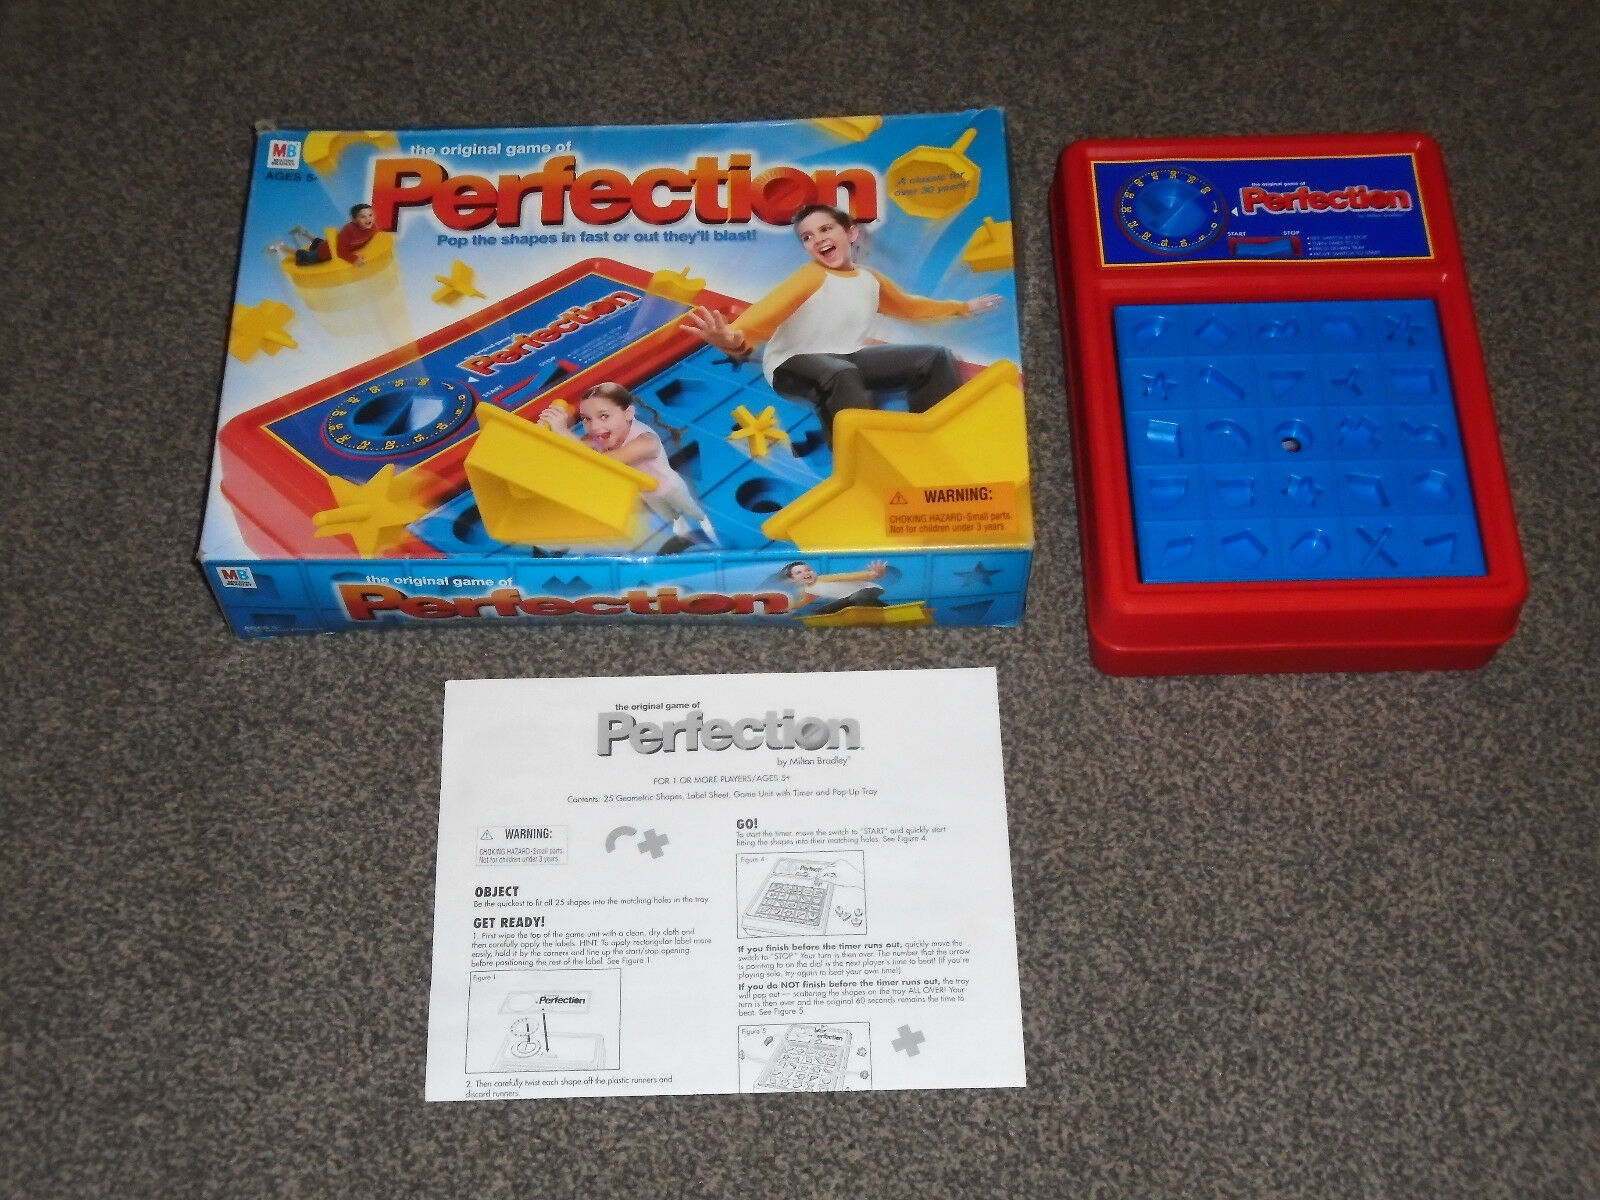 PERFECTION GAME   RARE 2003 USA EDITION BY MB HASBRO - IN VGC (FREE UK P&P)